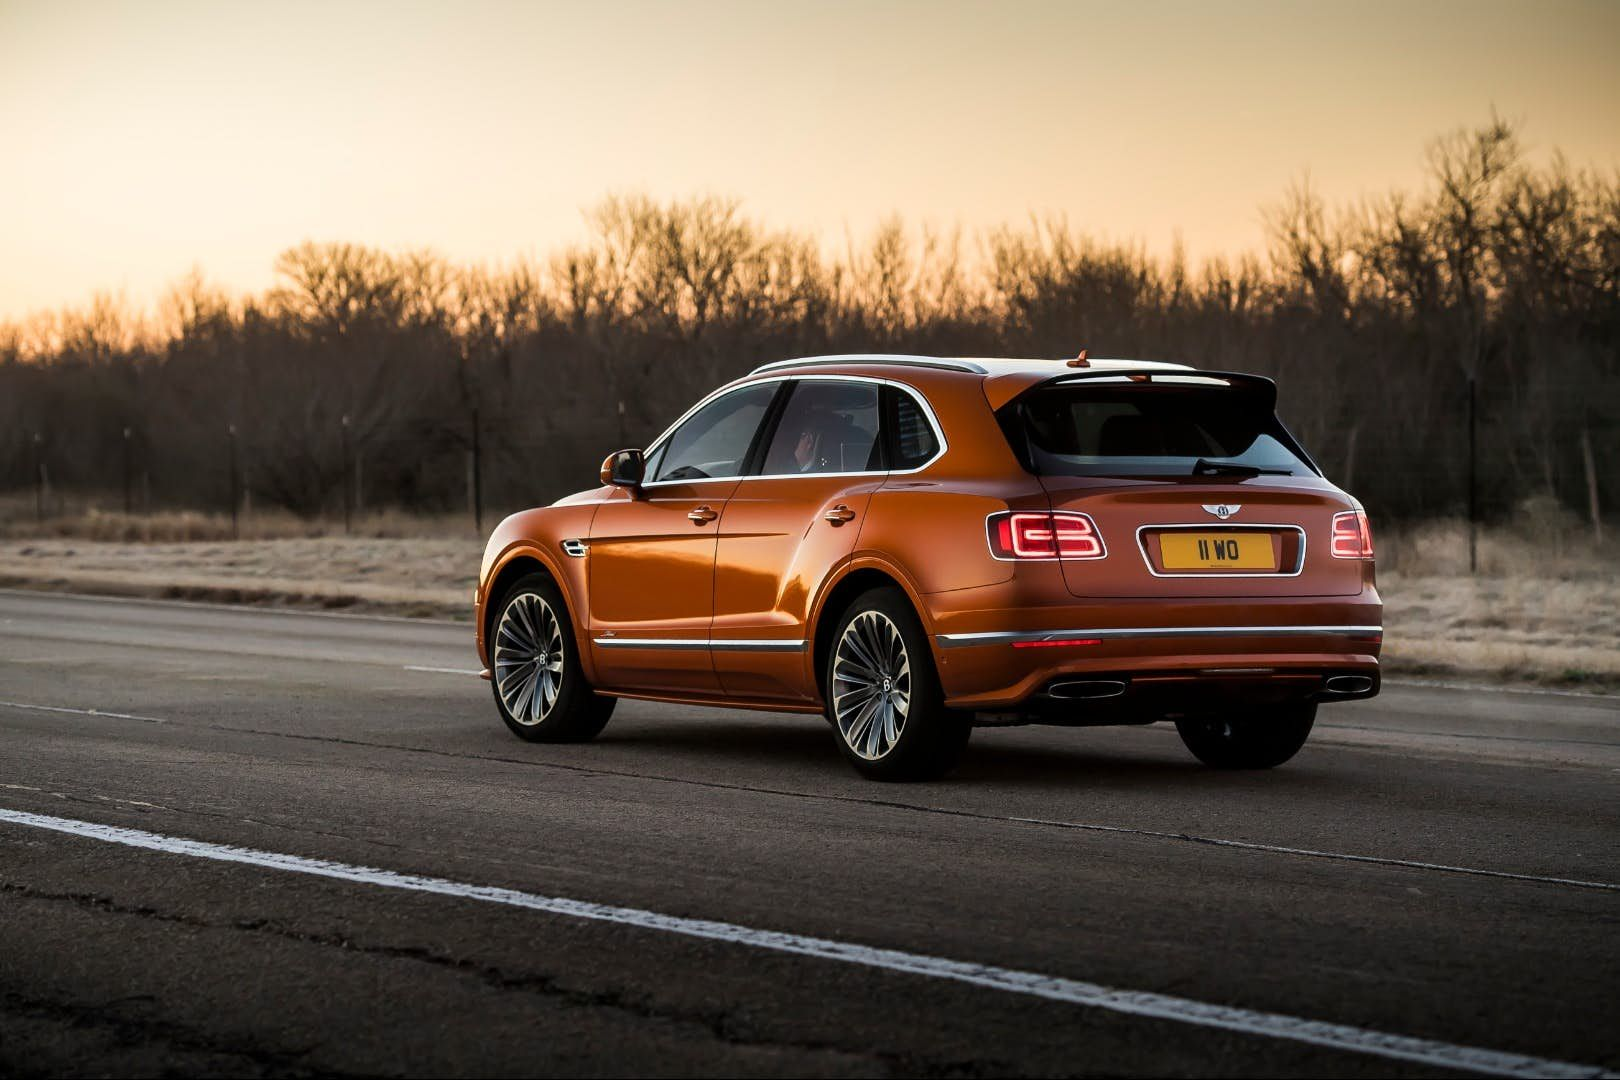 The Bentley Bentayga Speed Uses The Same Sport Tuned Eight Speed Automatic And All Wheel Drive System As The Teknik